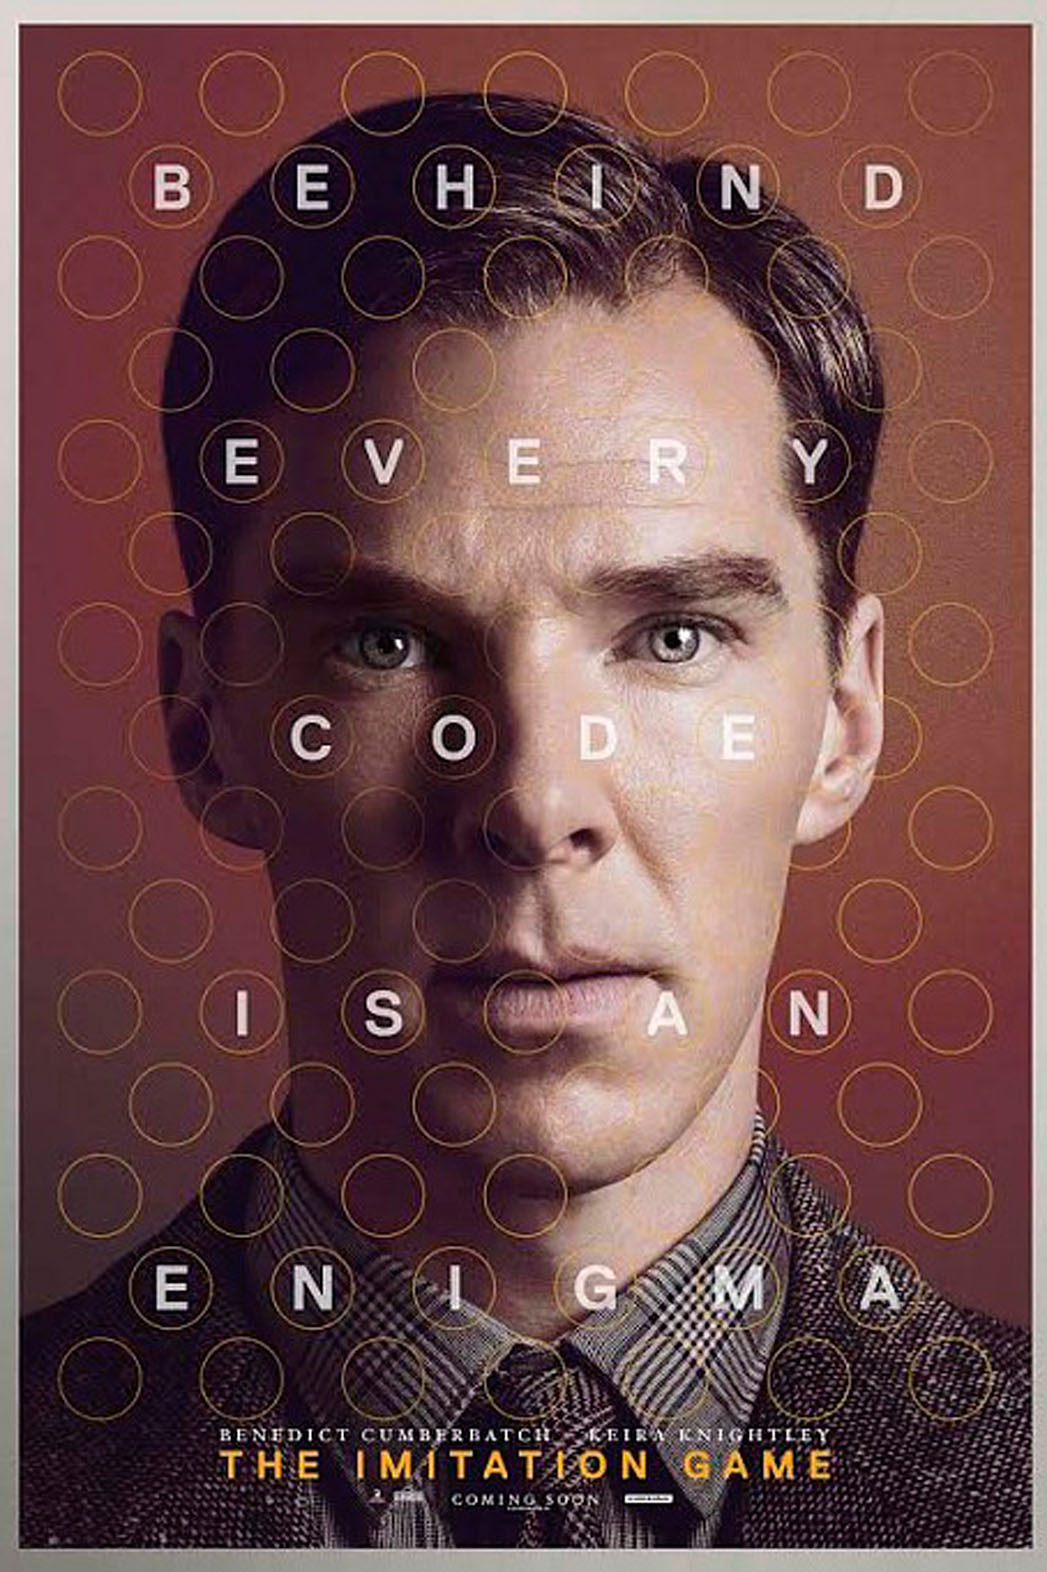 The Imitation Game is definitely my favorite movie of 2014. I'd recommend it to anyone.